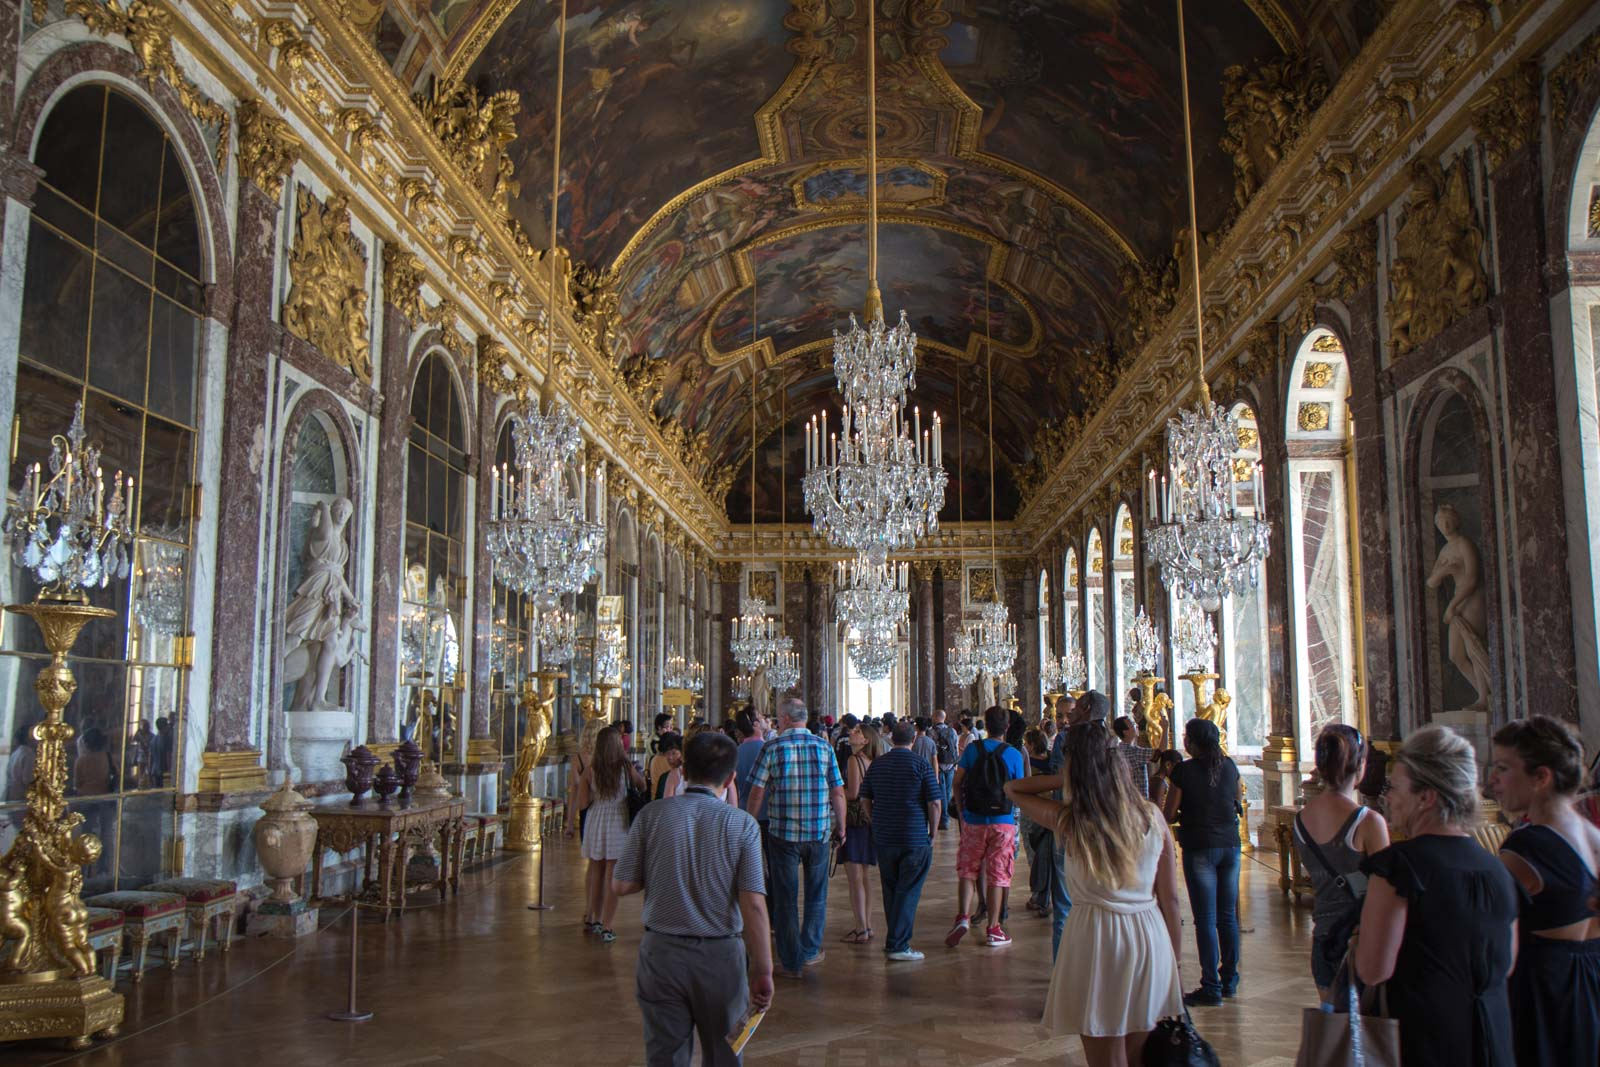 what does versailles symbolize